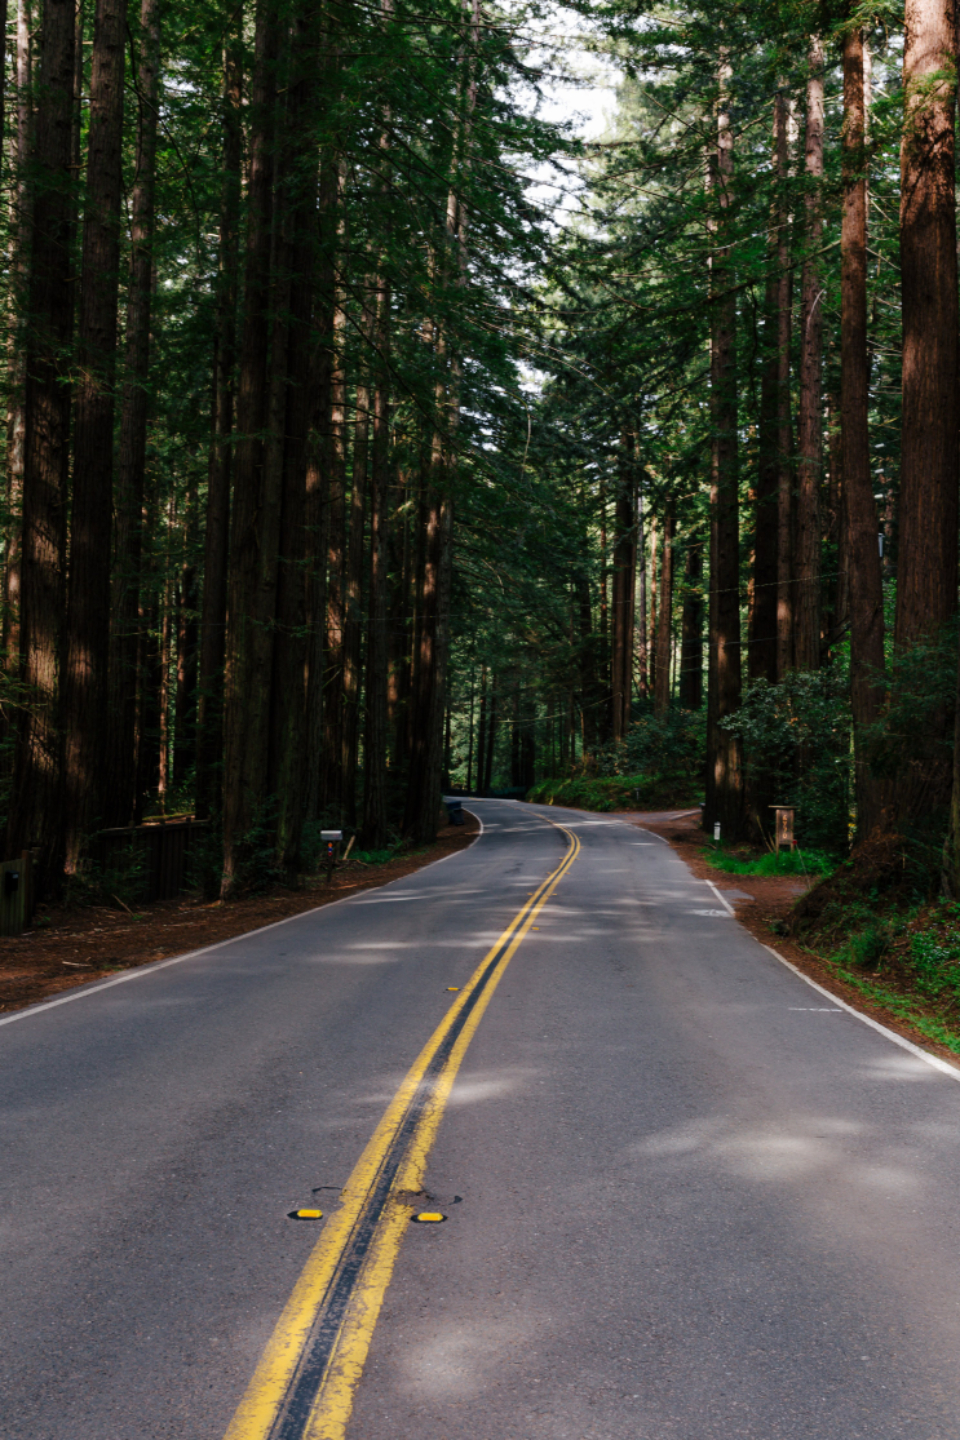 forest road travel trees nature outdoors pavement tall journey adventure vacation asphalt